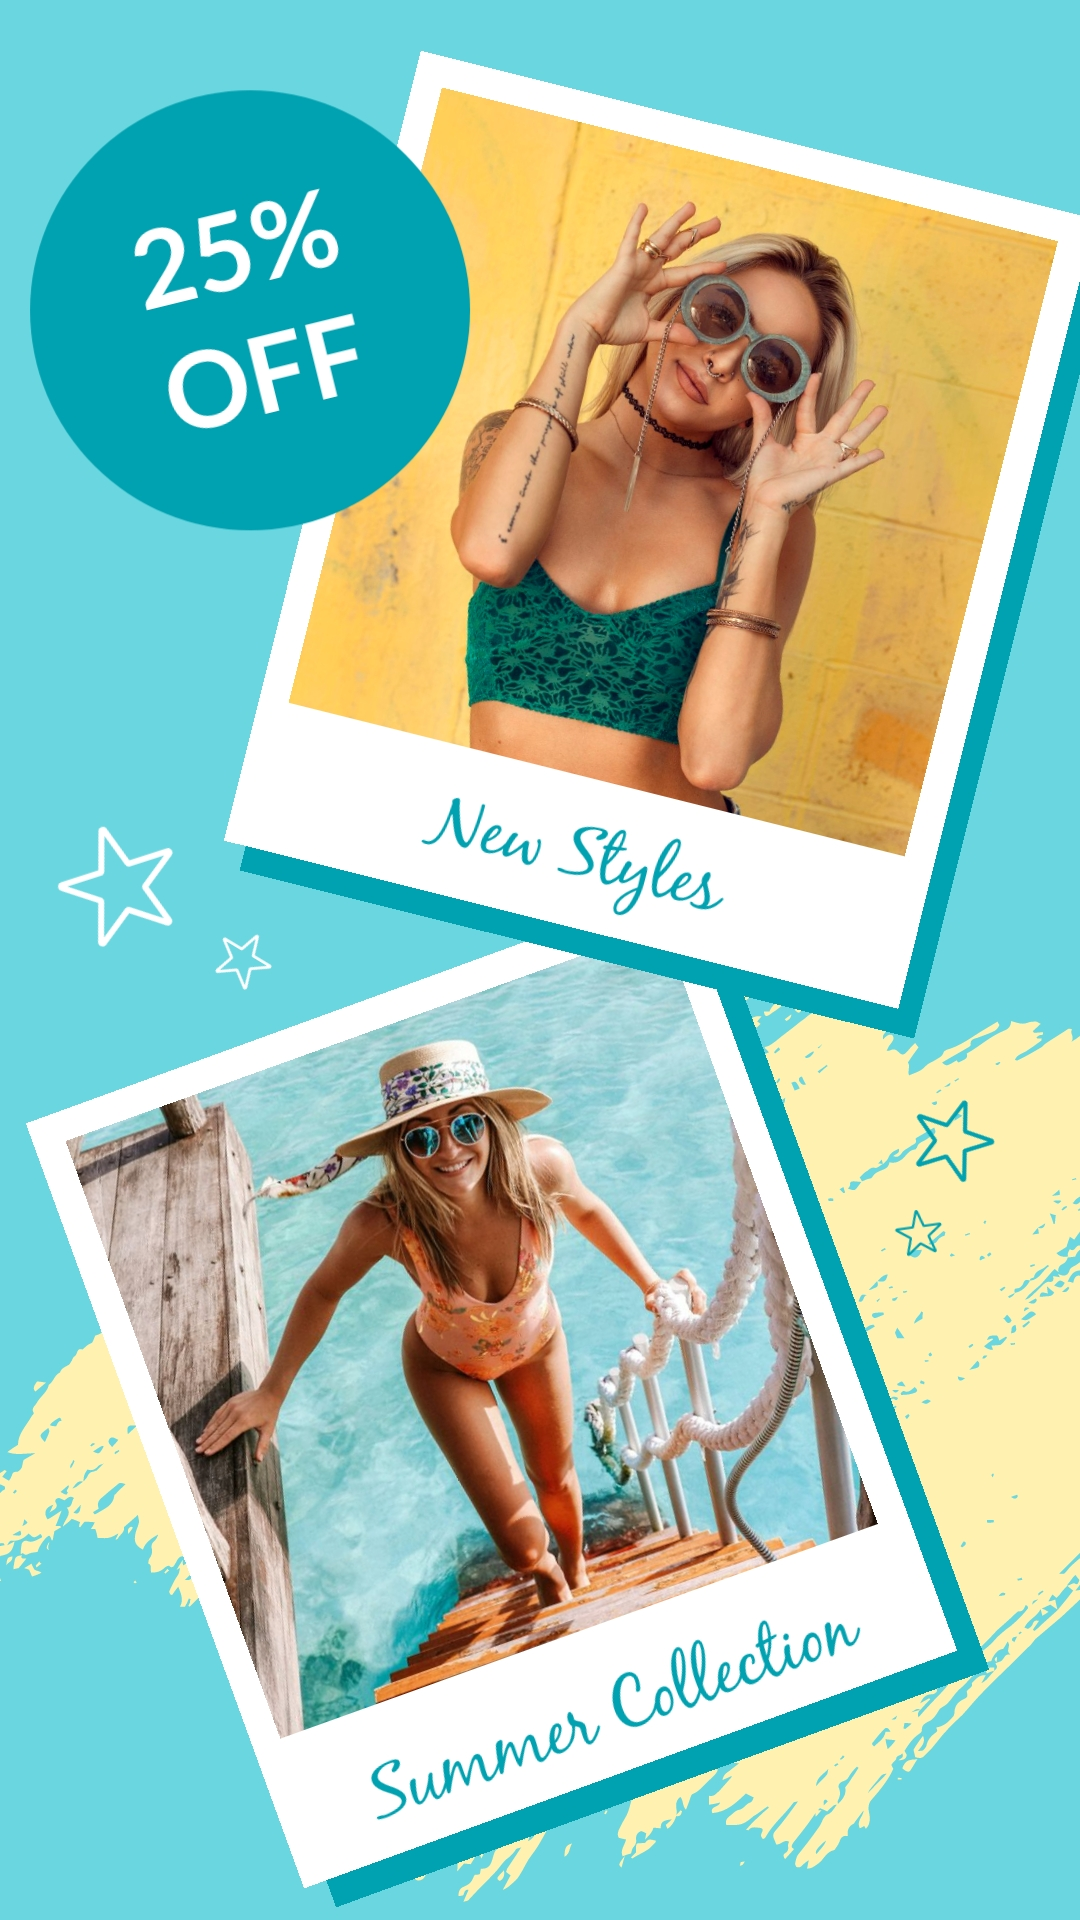 New Sunglasses Styles Animated Vertical Template